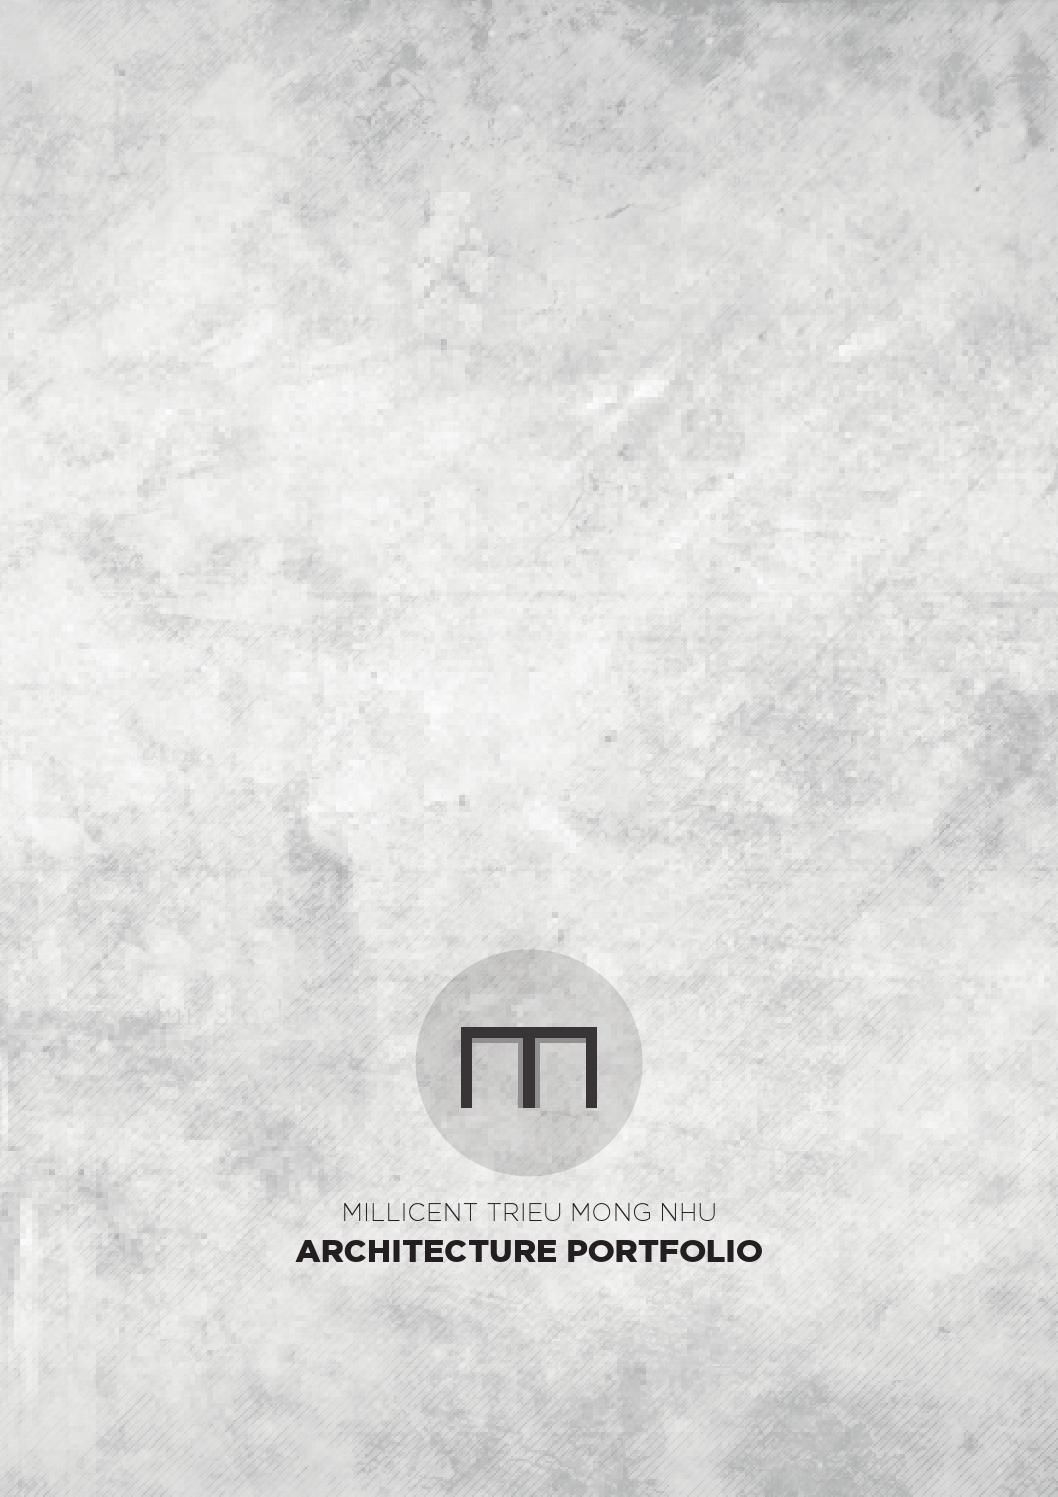 d38a65f278746a73c4f2d55332a09a6a Letterhead Template Miami University on cleaning company, graphic design, monogram personal, find free, for word free,